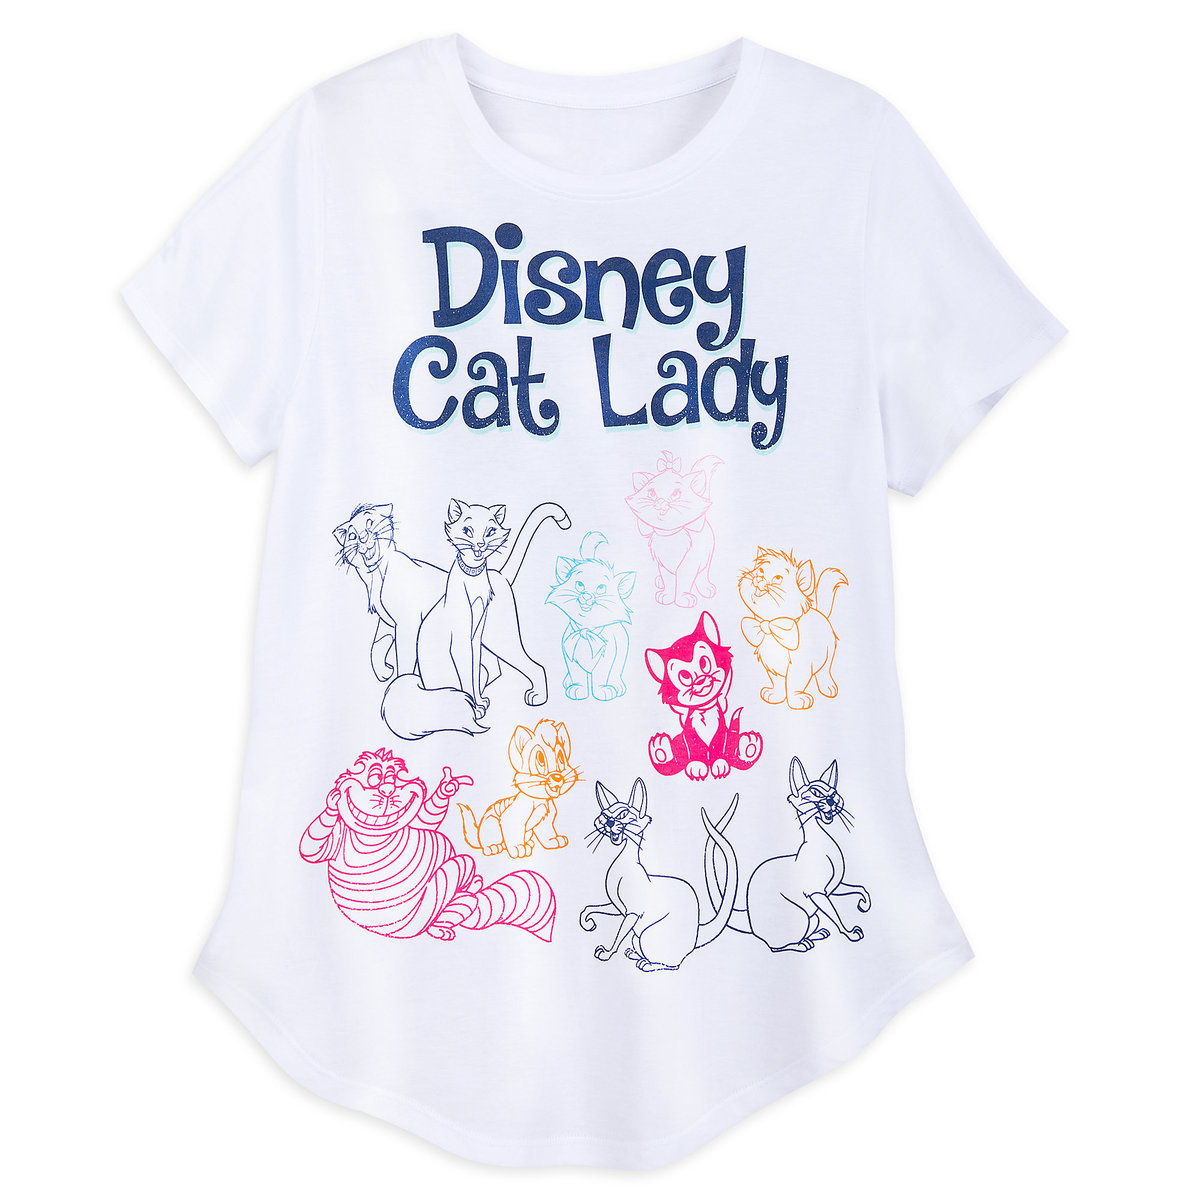 a5446972 Product Image of Disney Cats Fashion T-Shirt for Women # 1